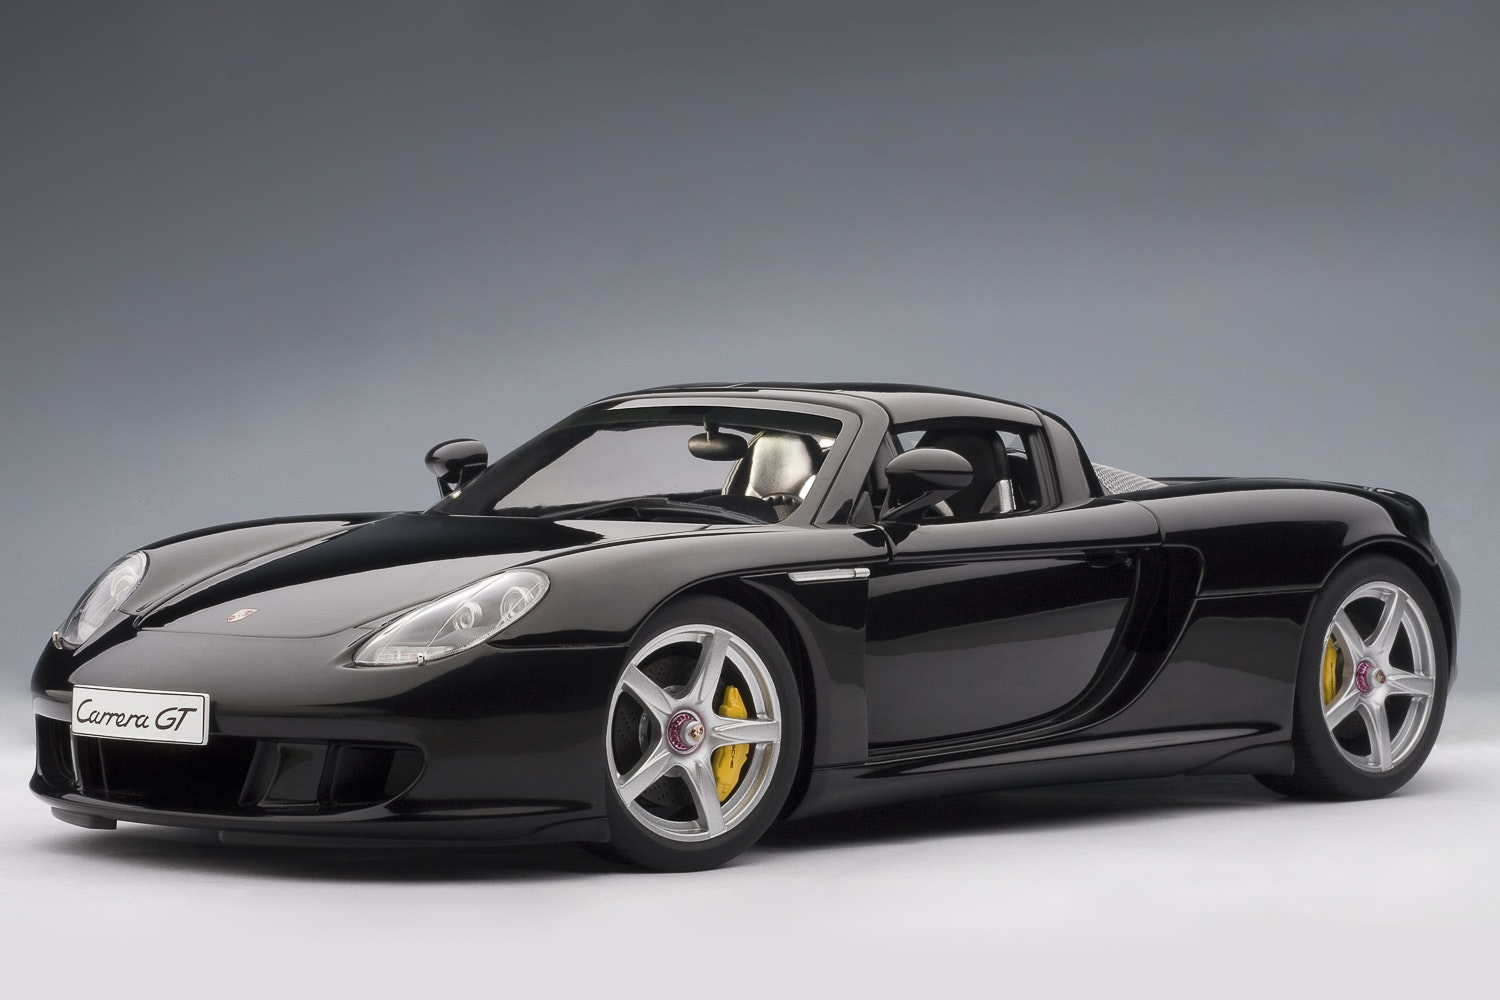 Porsche Carrera GT, Black with Black Interior